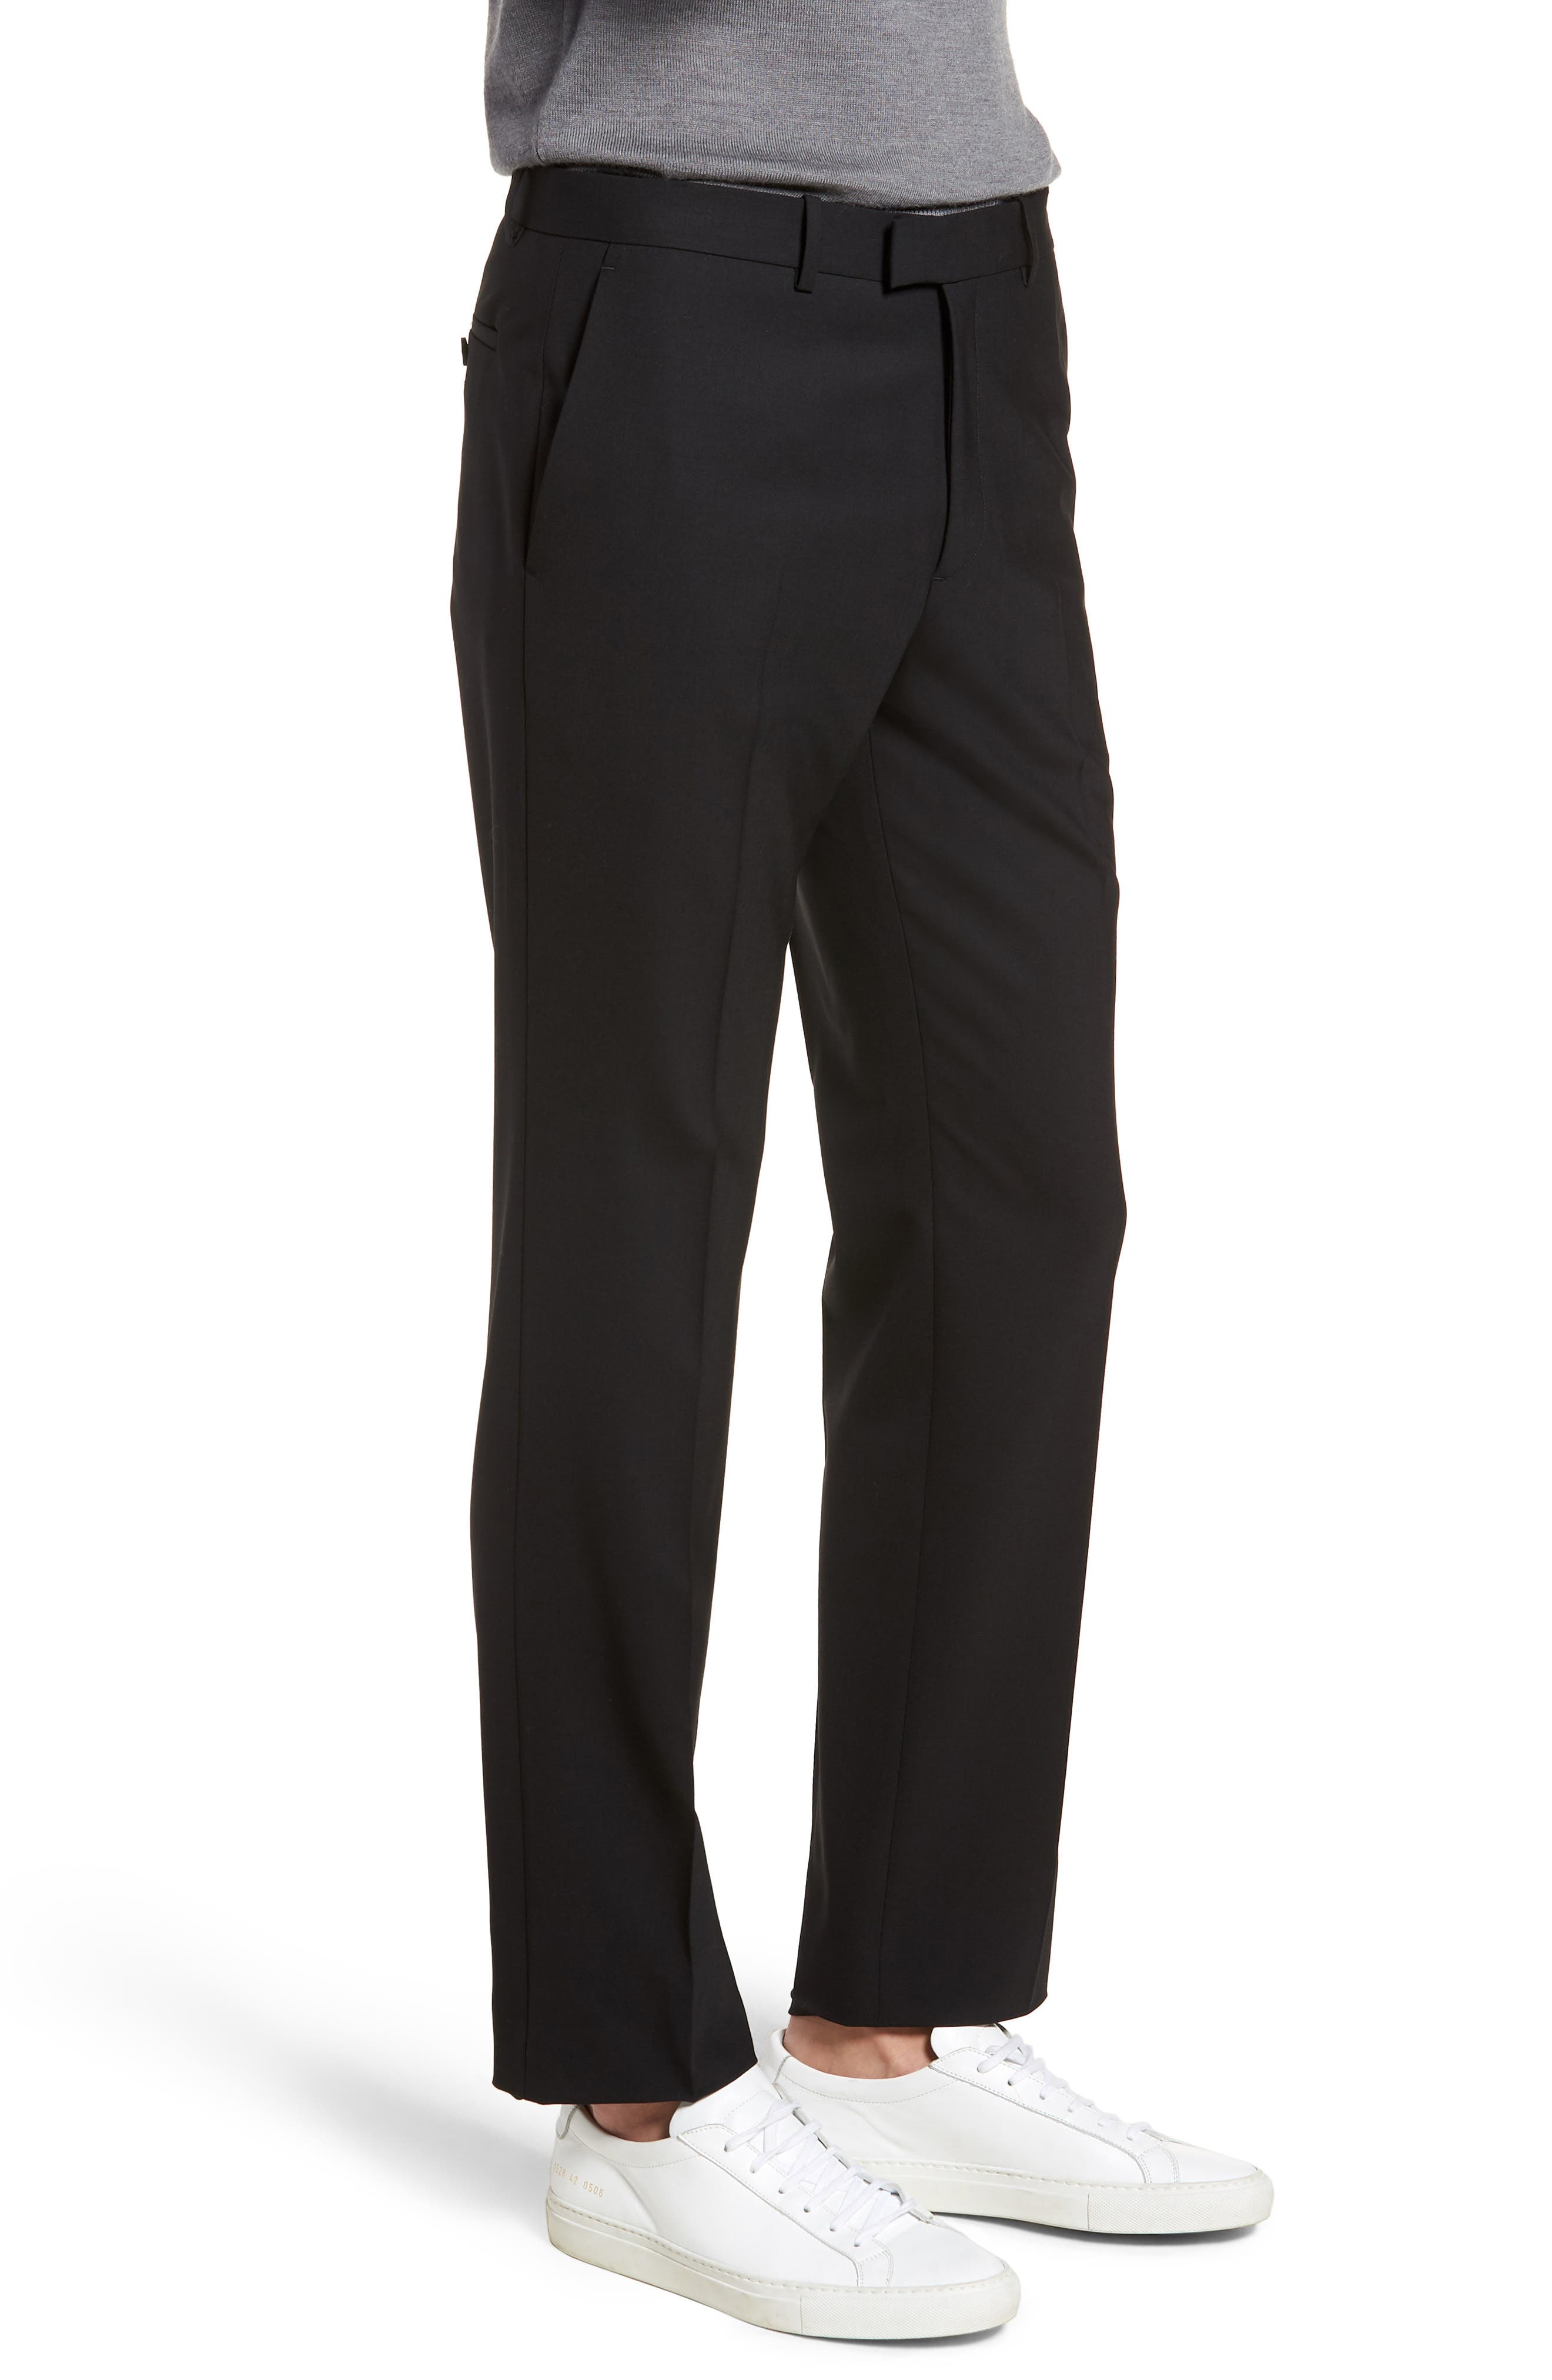 Marlo Flat Front Stretch Wool Pants,                             Alternate thumbnail 3, color,                             Black